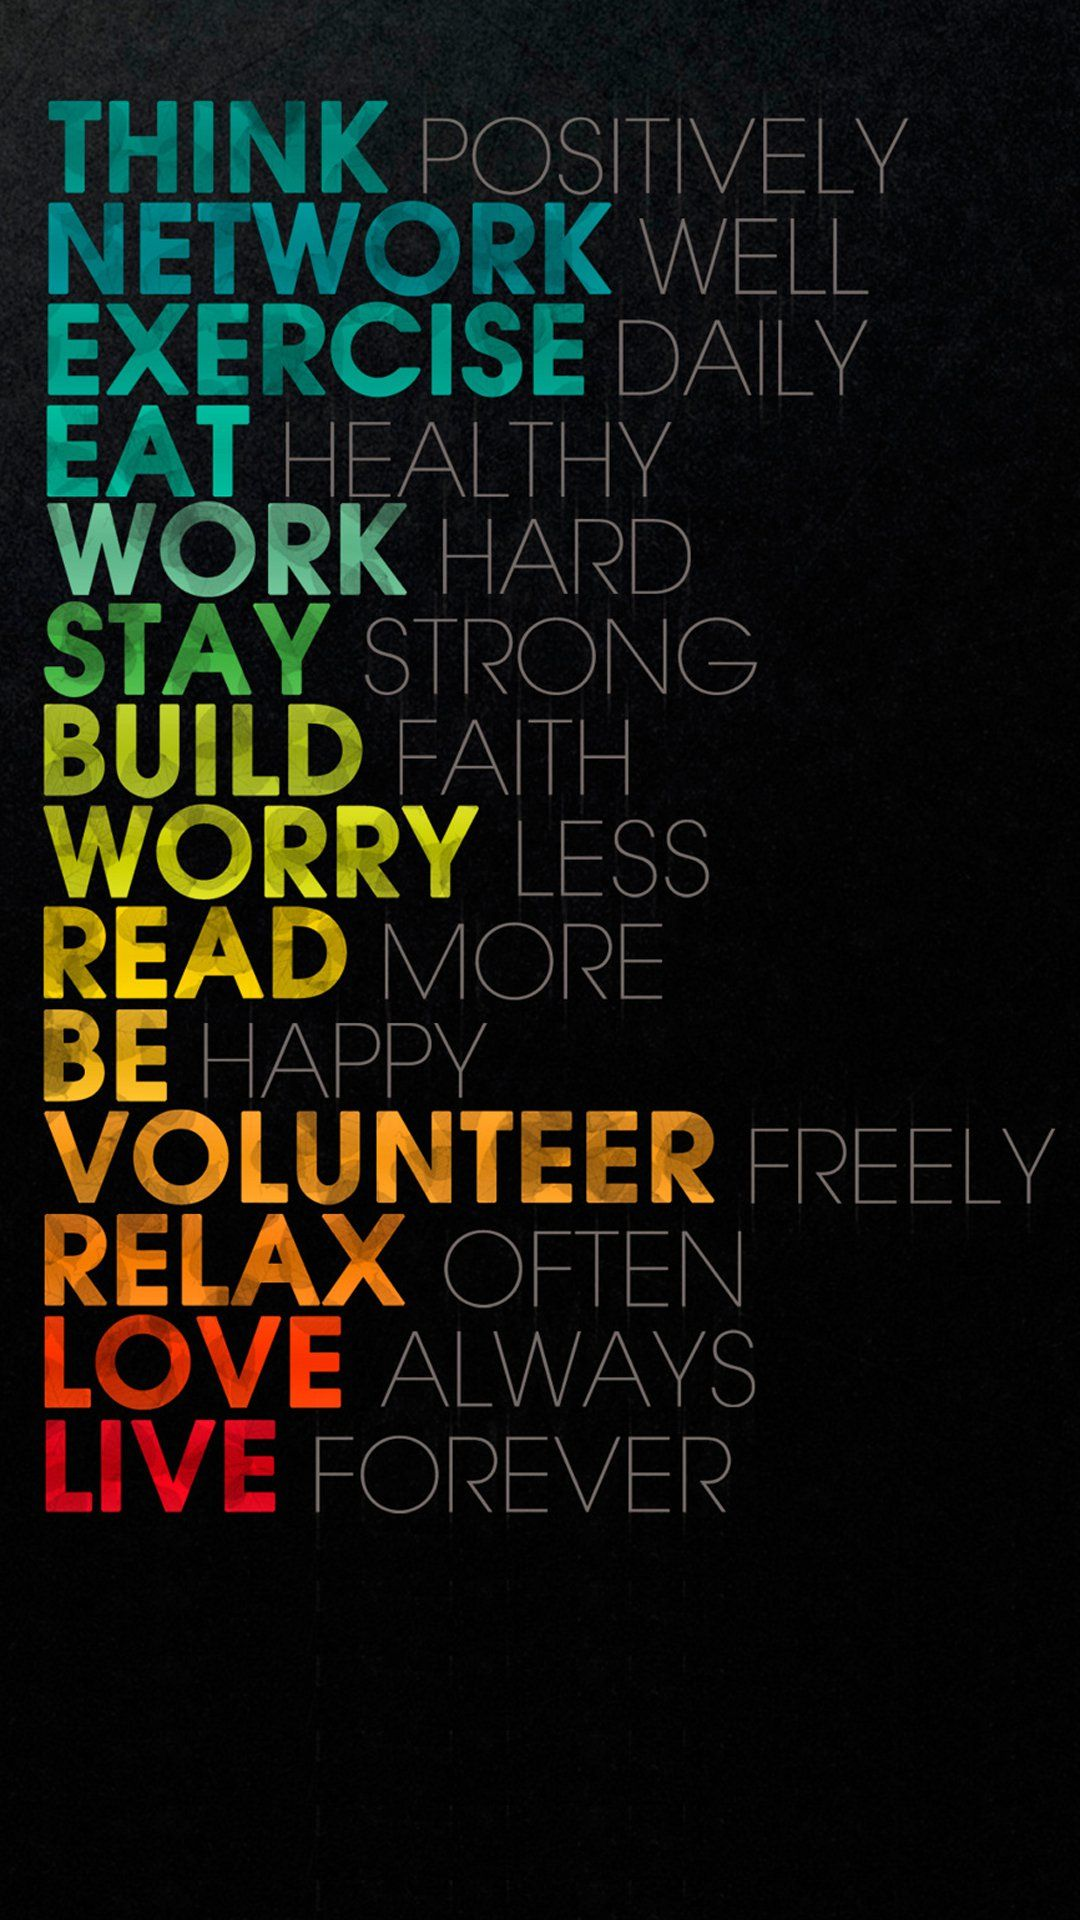 Pin By Wisdom Juma On Vision Board Quotes Wallpaper For Mobile Inspirational Quotes Wallpapers Motivational Quotes Wallpaper